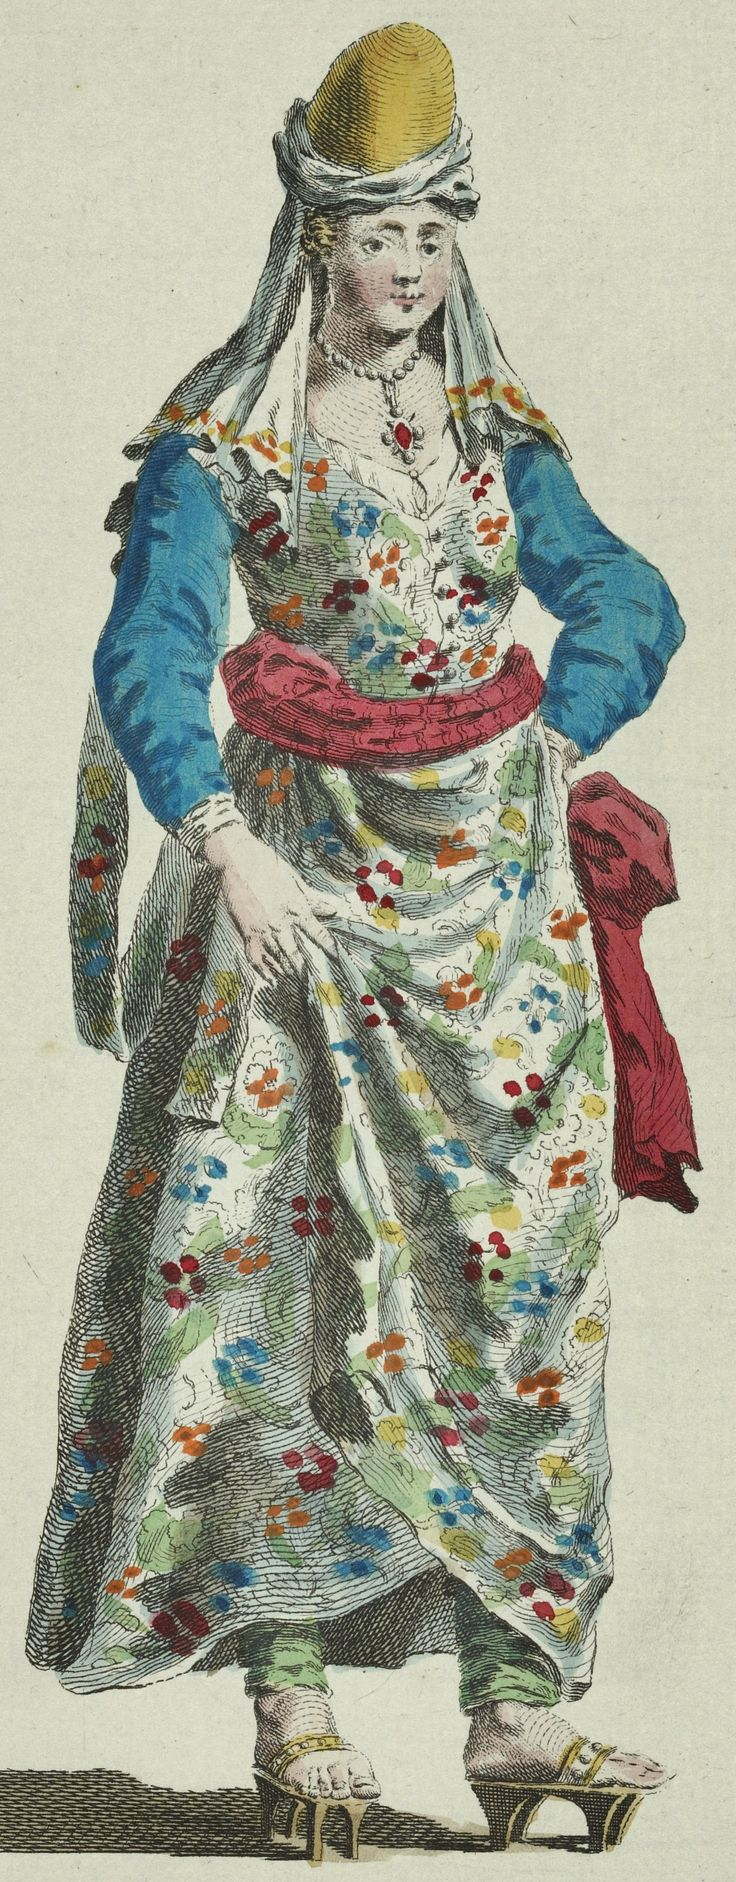 Habit of an Ottoman lady of the grand seigniors seraglio, in the mid-16th century. Originally published in 1568 in Voyages and travels of N. de Nicholay Dauphinoys, seigneur D'Arfeville, valet de chambre and geographer to the king of France. (Photo credit: NYPL Digital Gallery)